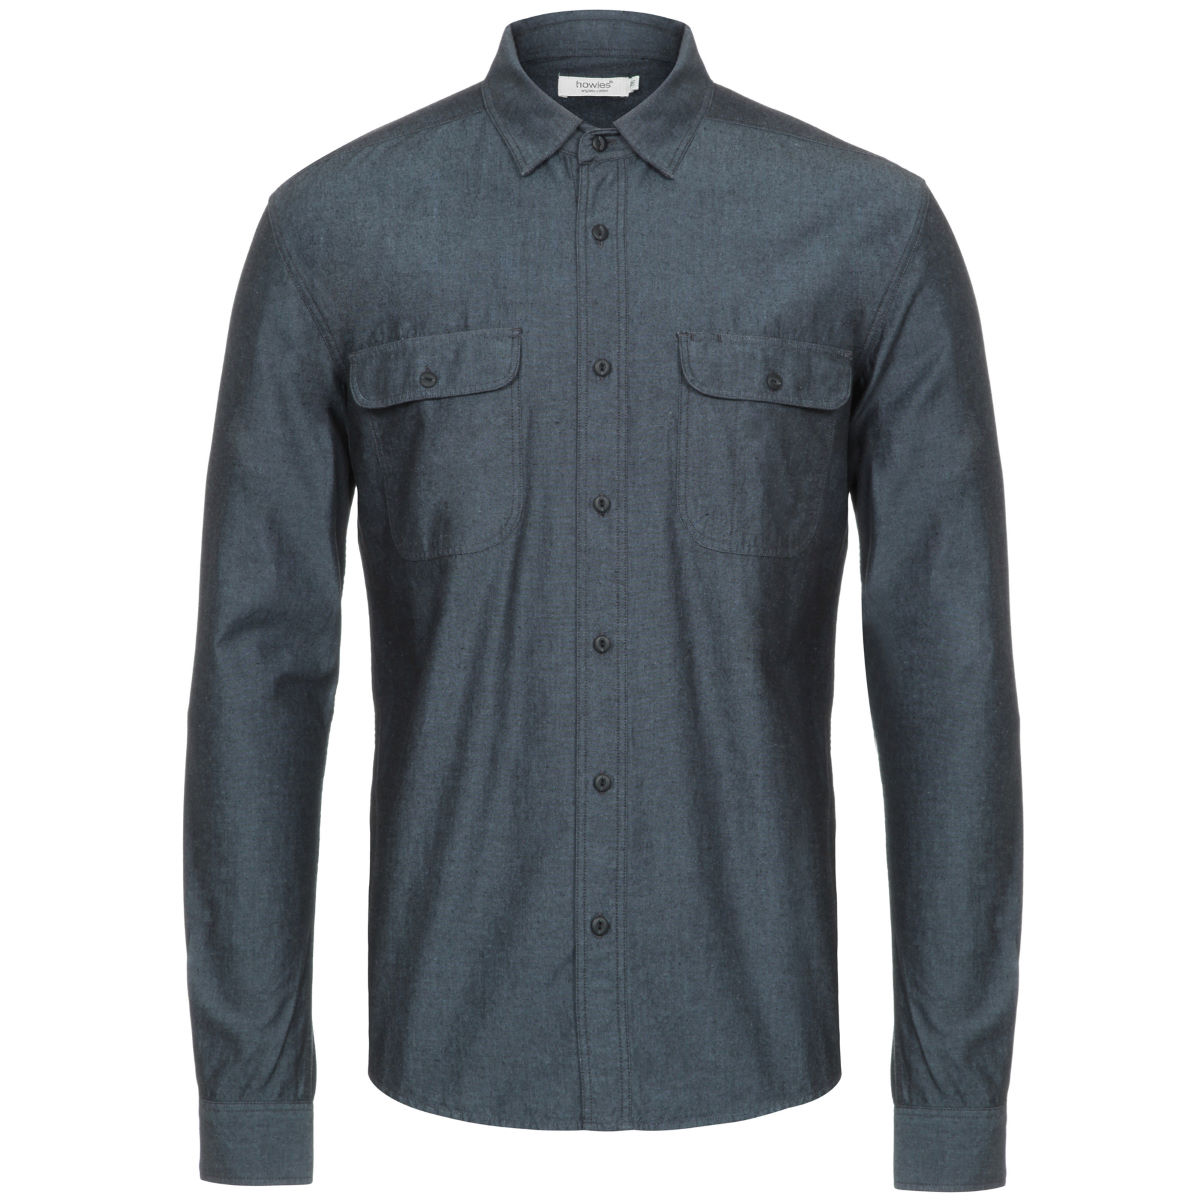 Howies redford shirt casual shirts light wash ss17 m17shico82redbrlight wash s 0